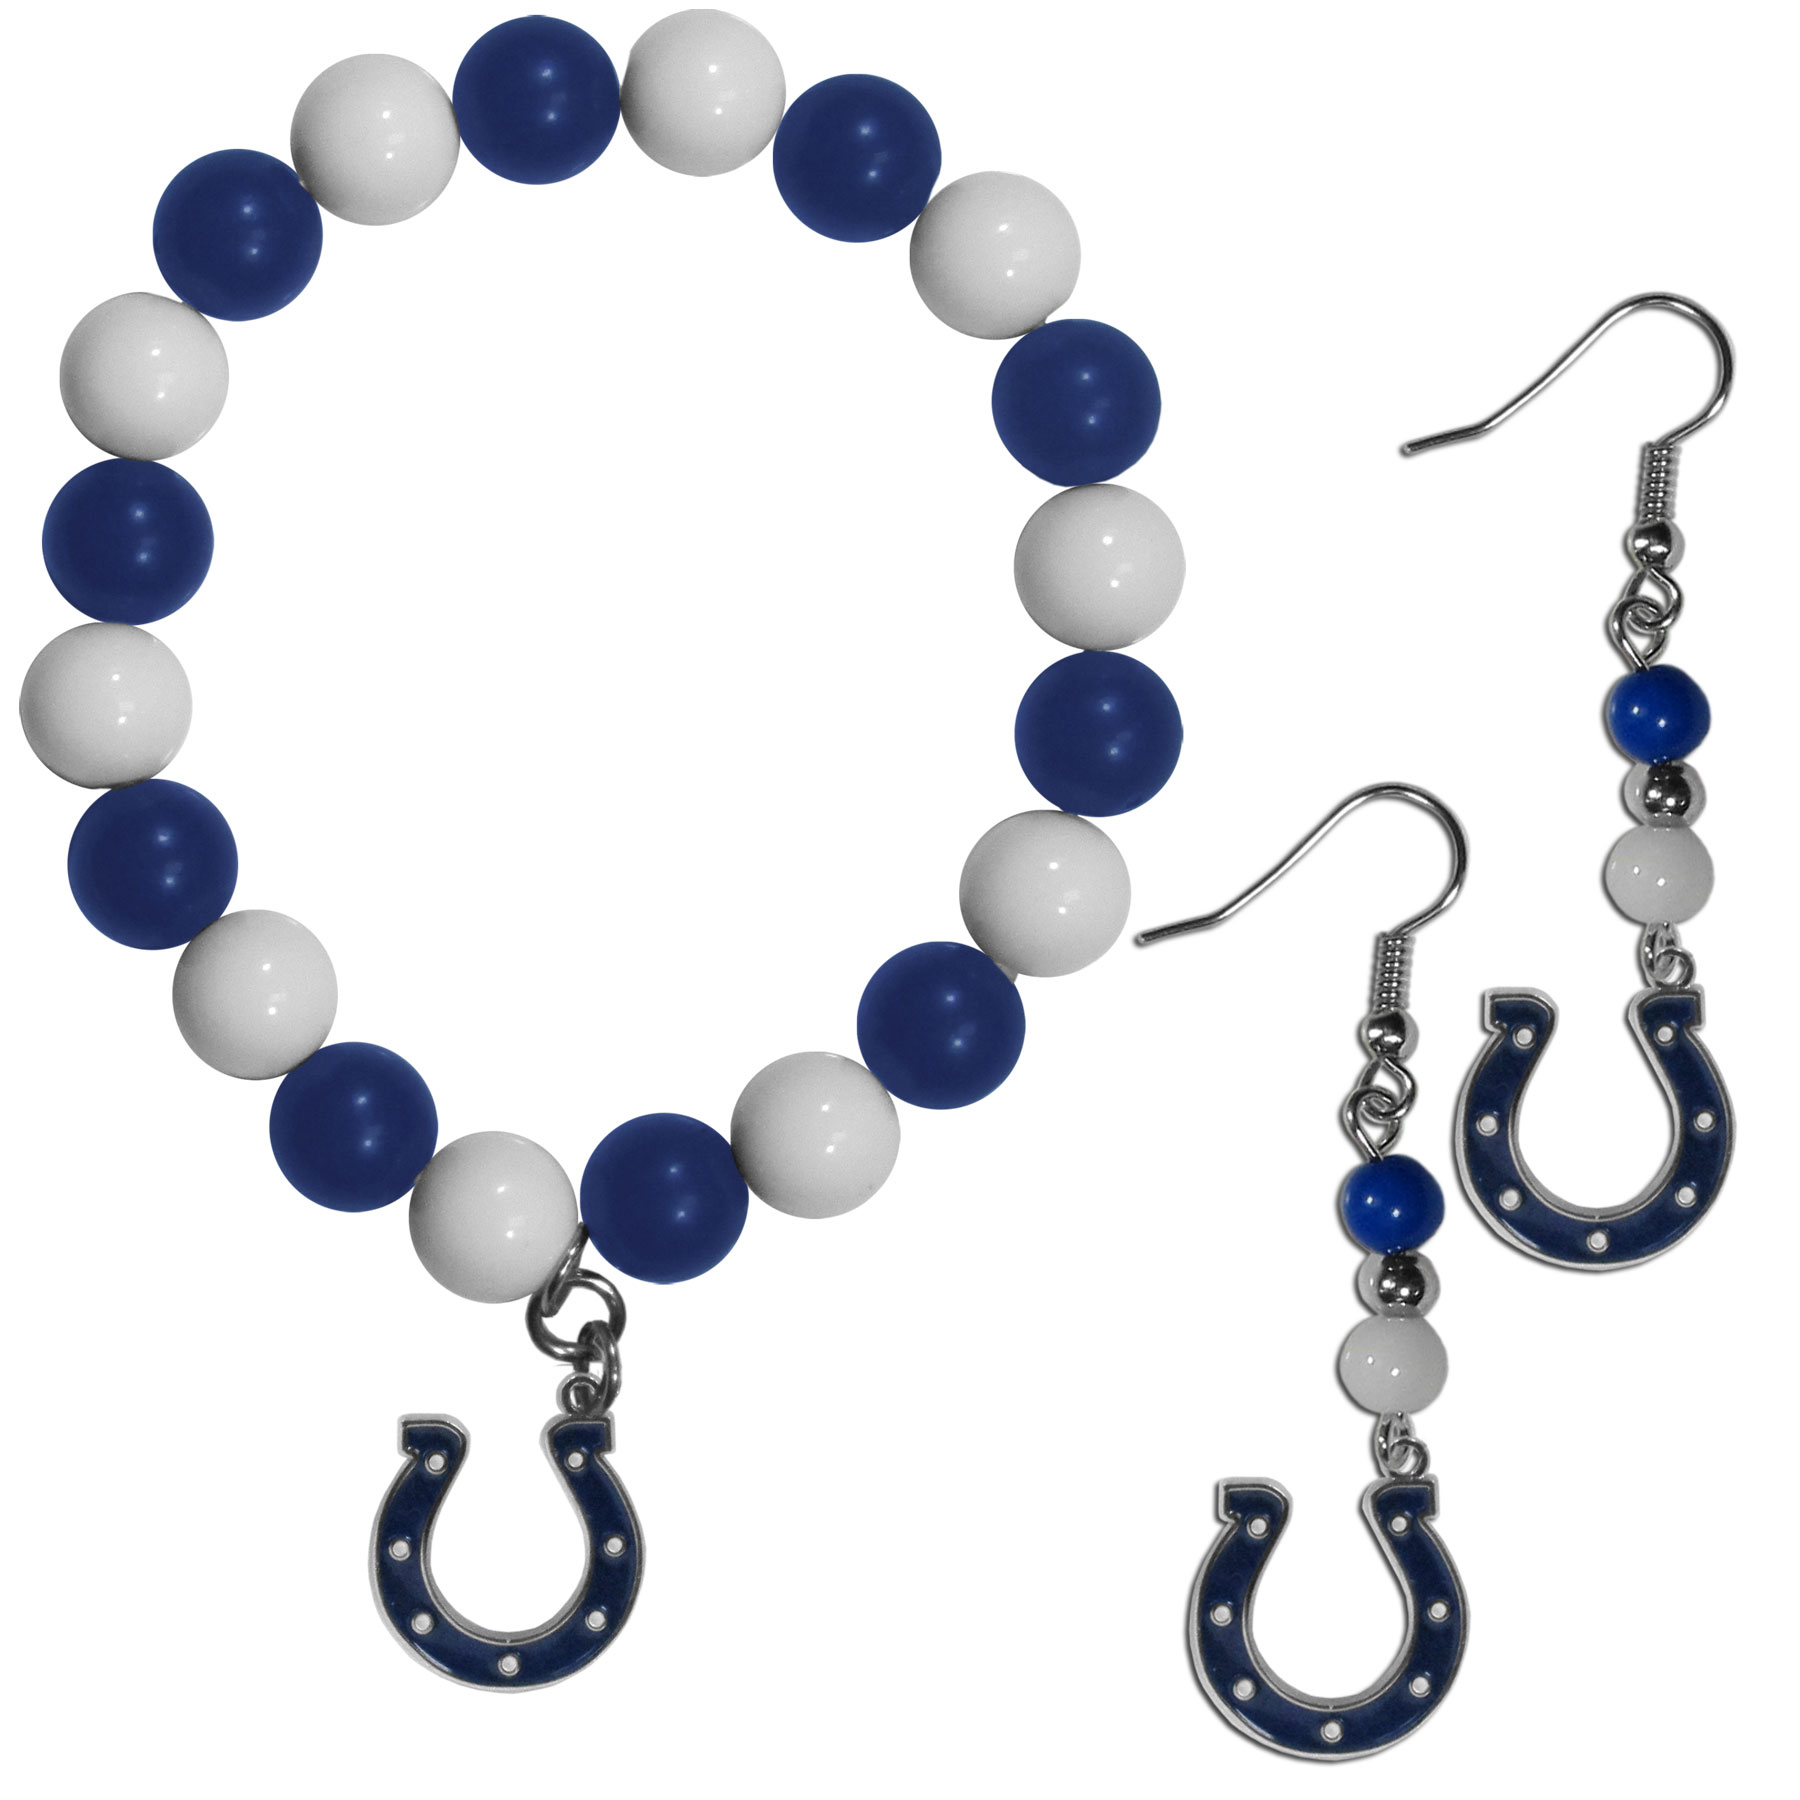 Indianapolis Colts Fan Bead Earrings and Bracelet Set - This fun and colorful Indianapolis Colts fan bead jewelry set is fun and casual with eye-catching beads in bright team colors. The fashionable dangle earrings feature a team colored beads that drop down to a carved and enameled charm. The stretch bracelet has larger matching beads that make a striking statement and have a matching team charm. These sassy yet sporty jewelry pieces make a perfect gift for any female fan. Spice up your game-day outfit with these fun colorful earrings and bracelet that are also cute enough for any day.